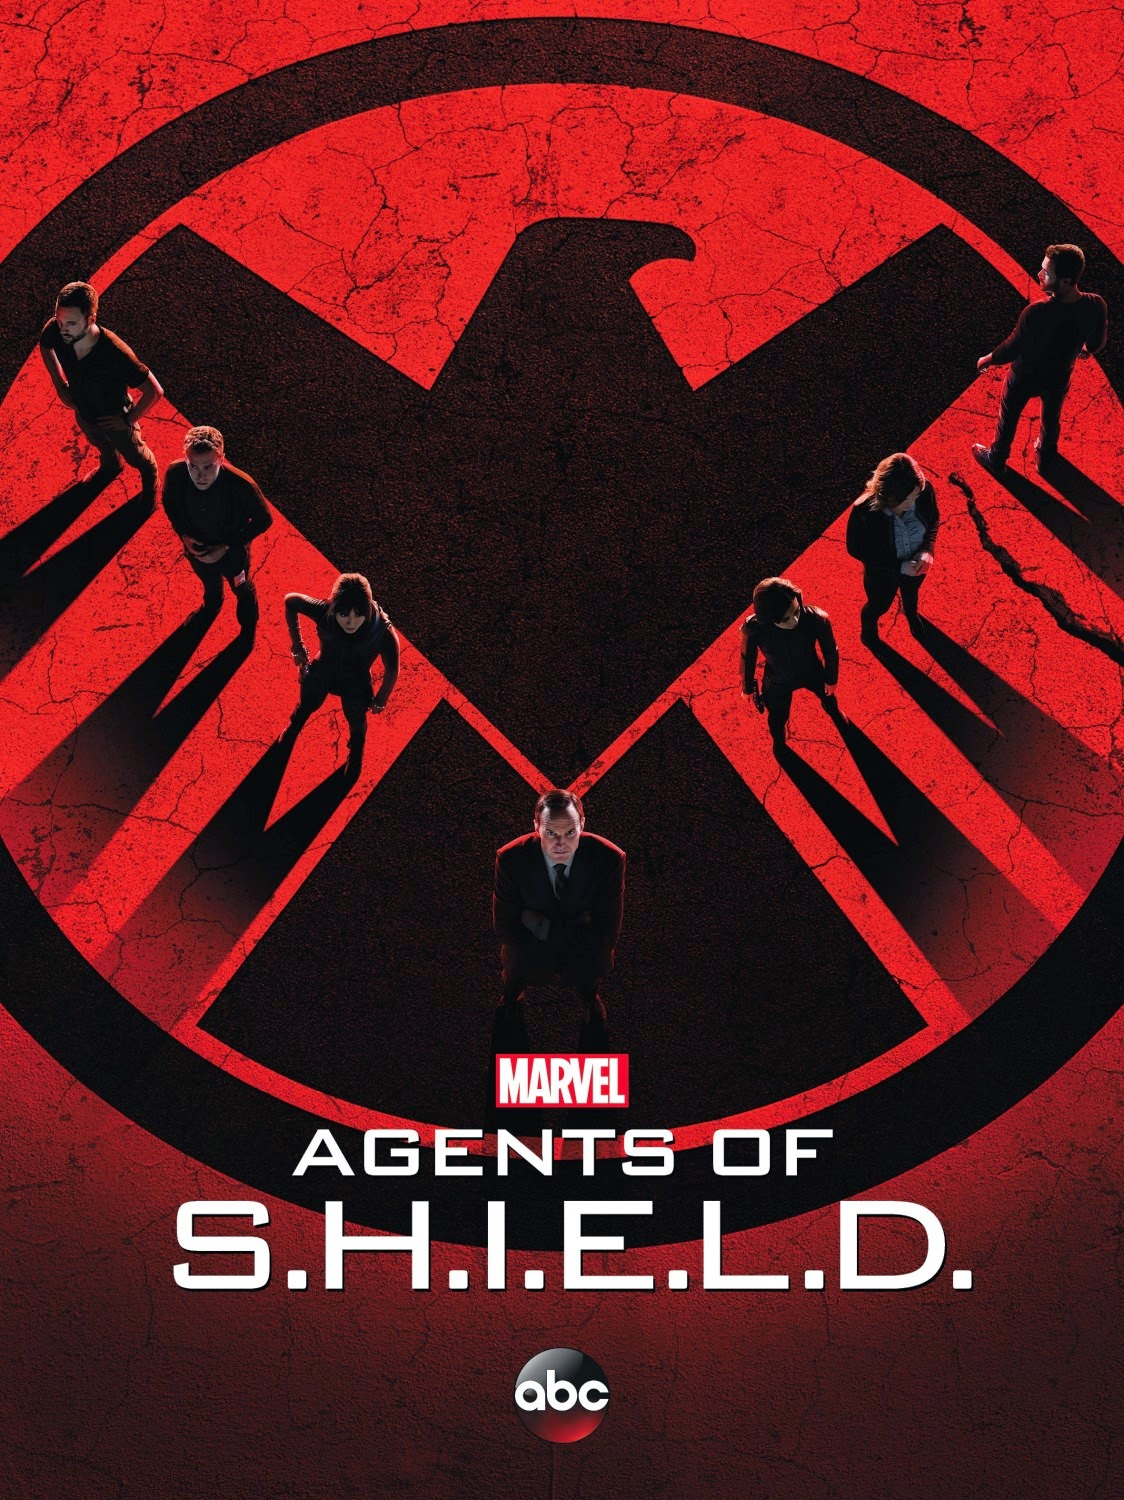 Marvel's Agents of SHIELD Teaser Television Poster